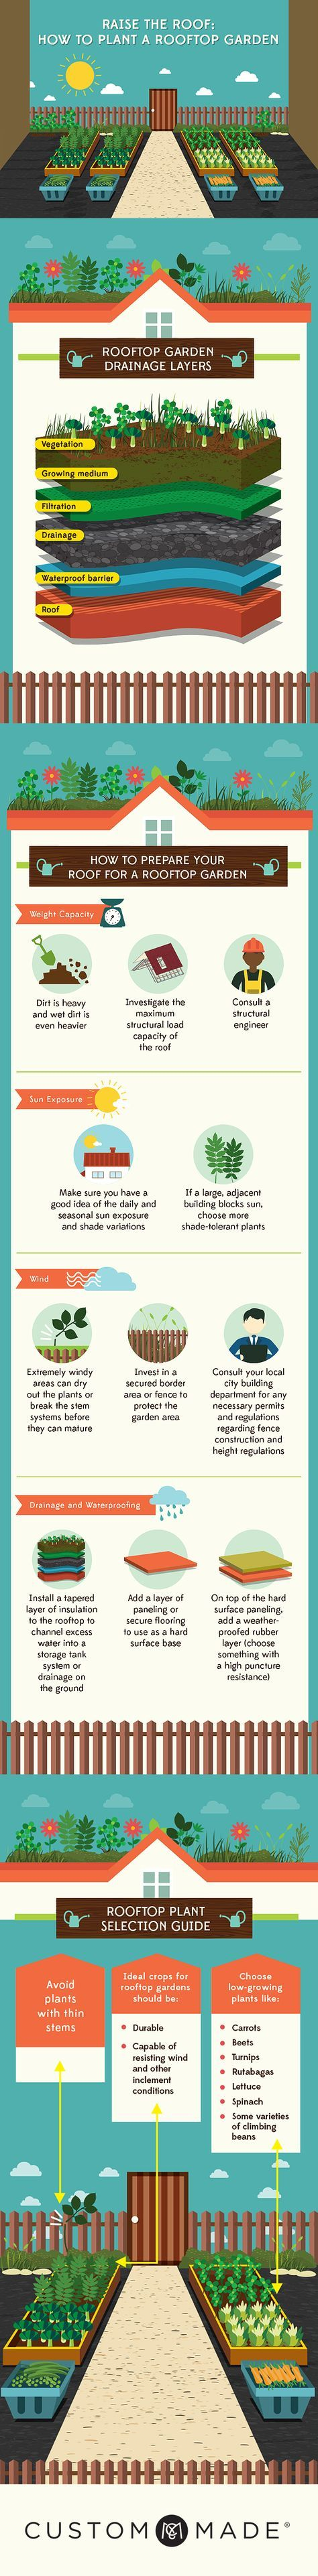 How to Plant a Rooftop Garden #rooftopterrace